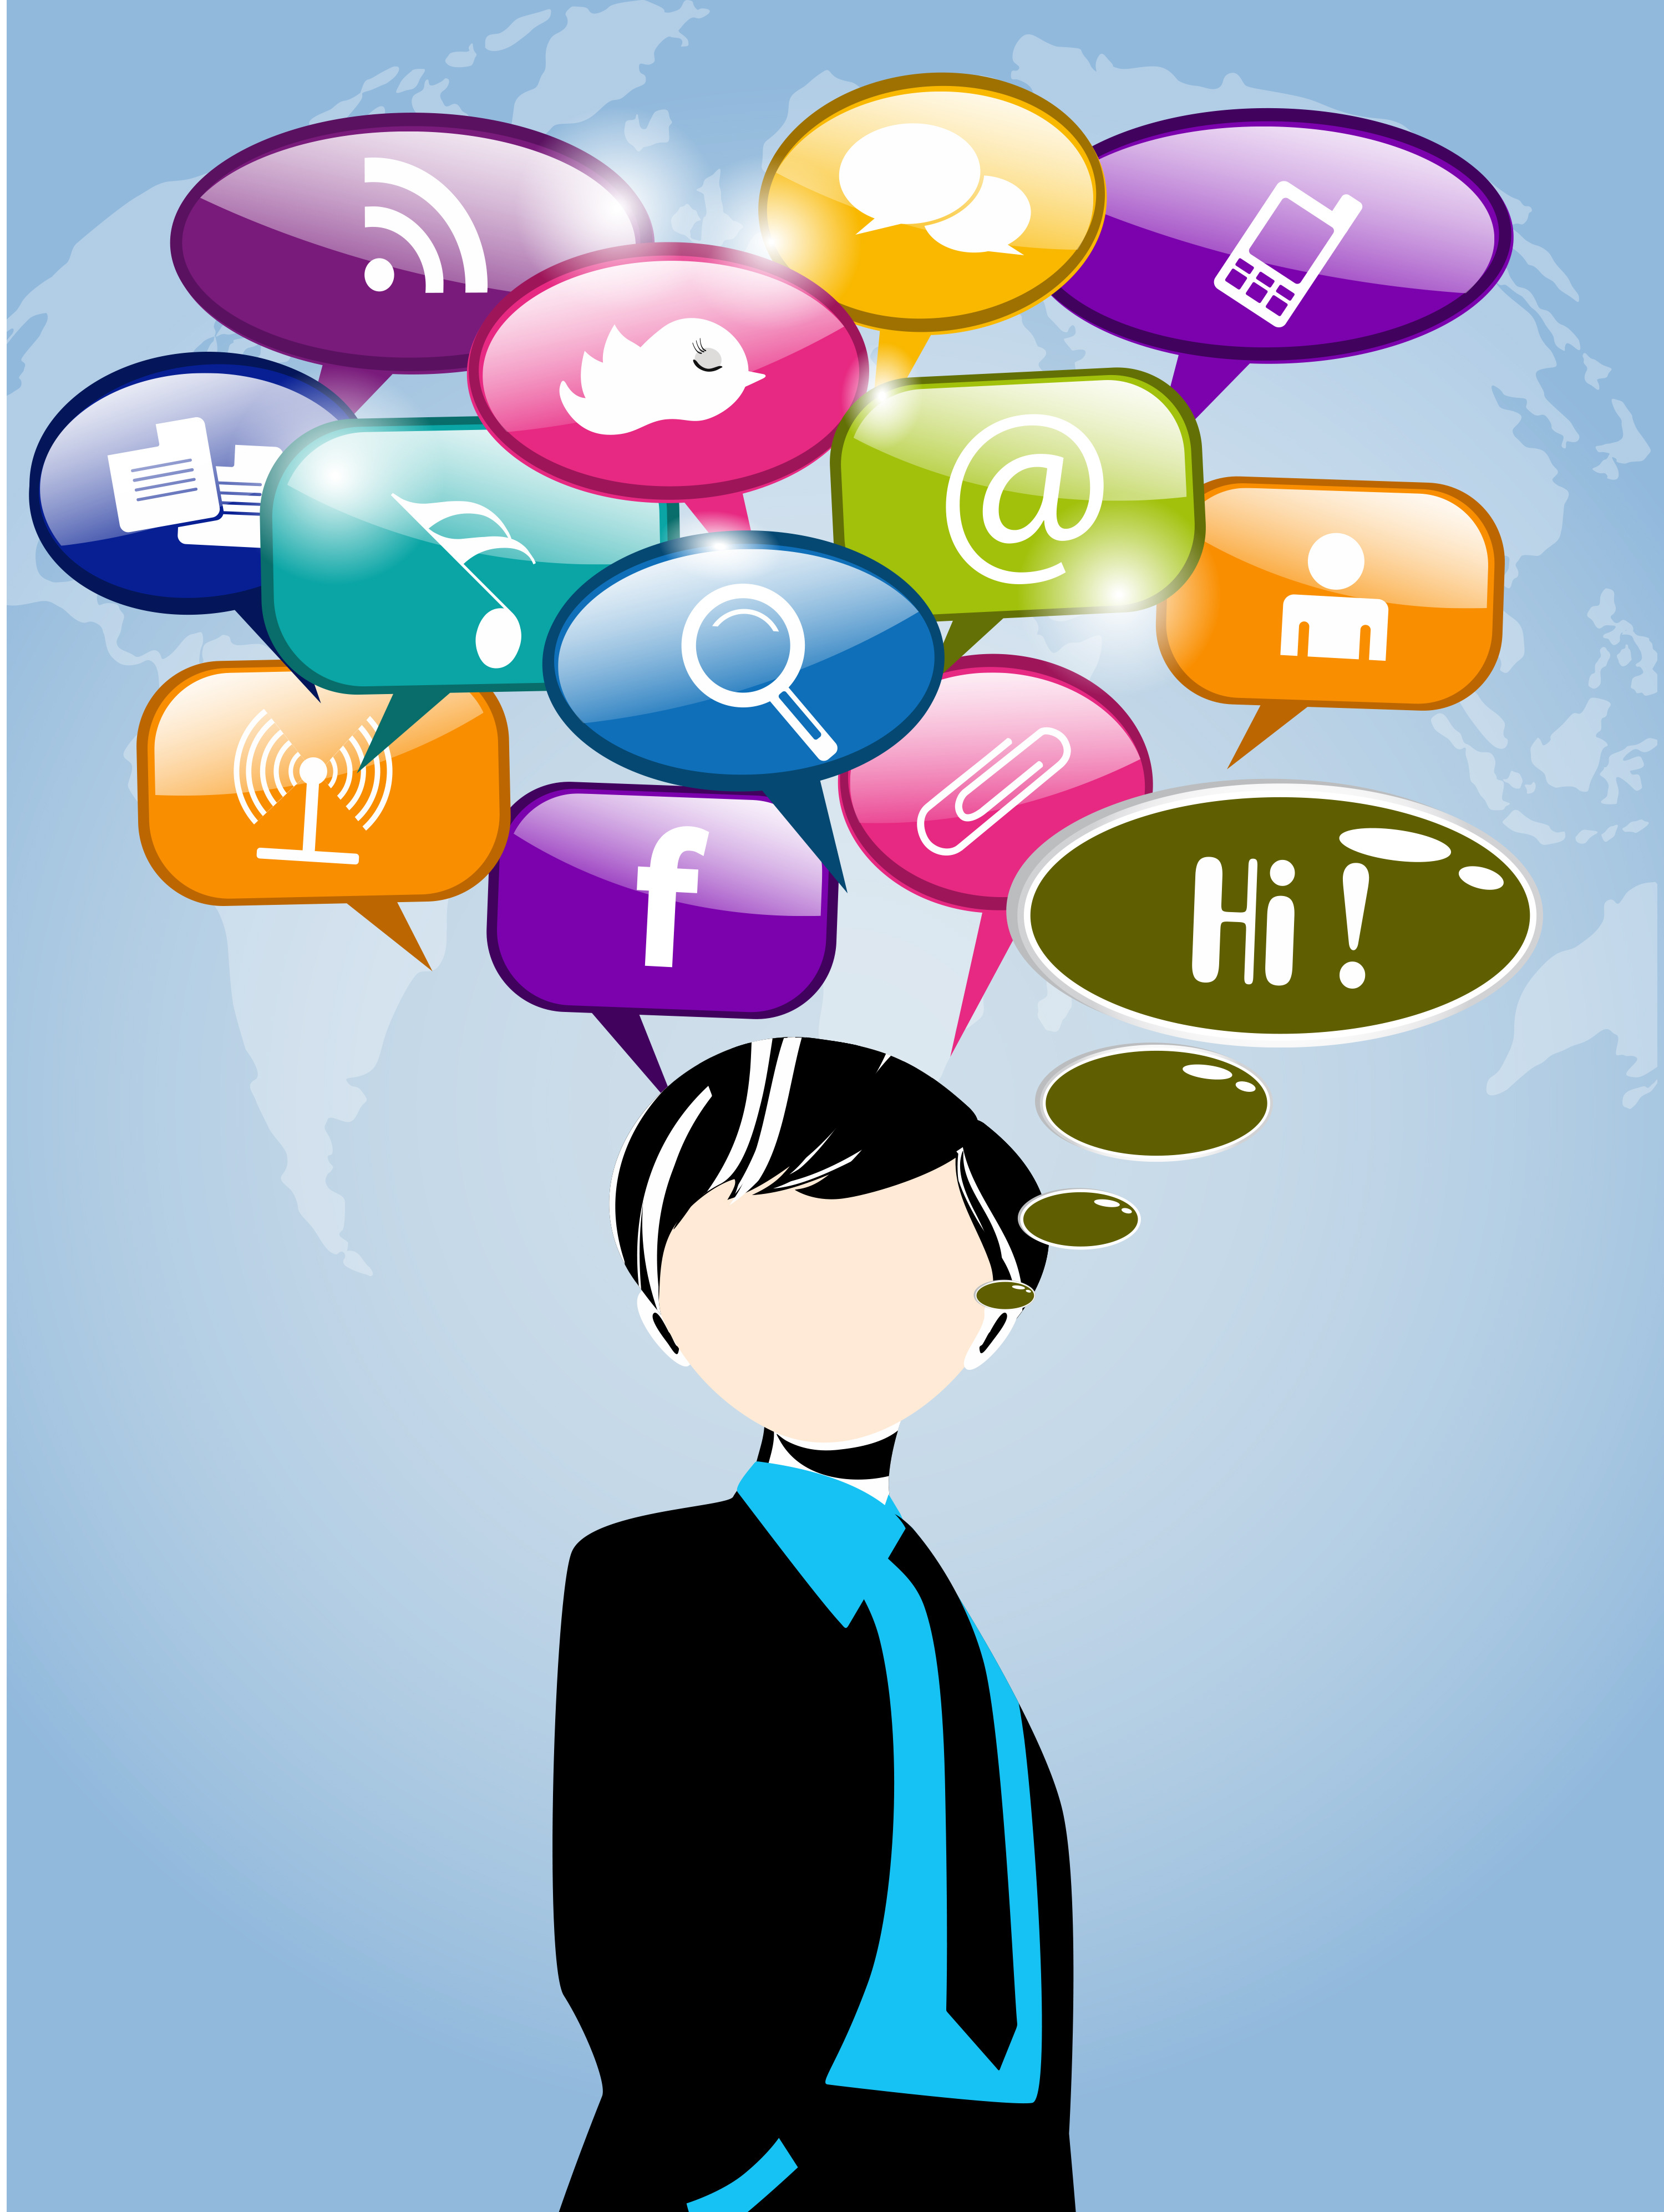 social, networking, facebook, instagram, twitter, expos, email, text